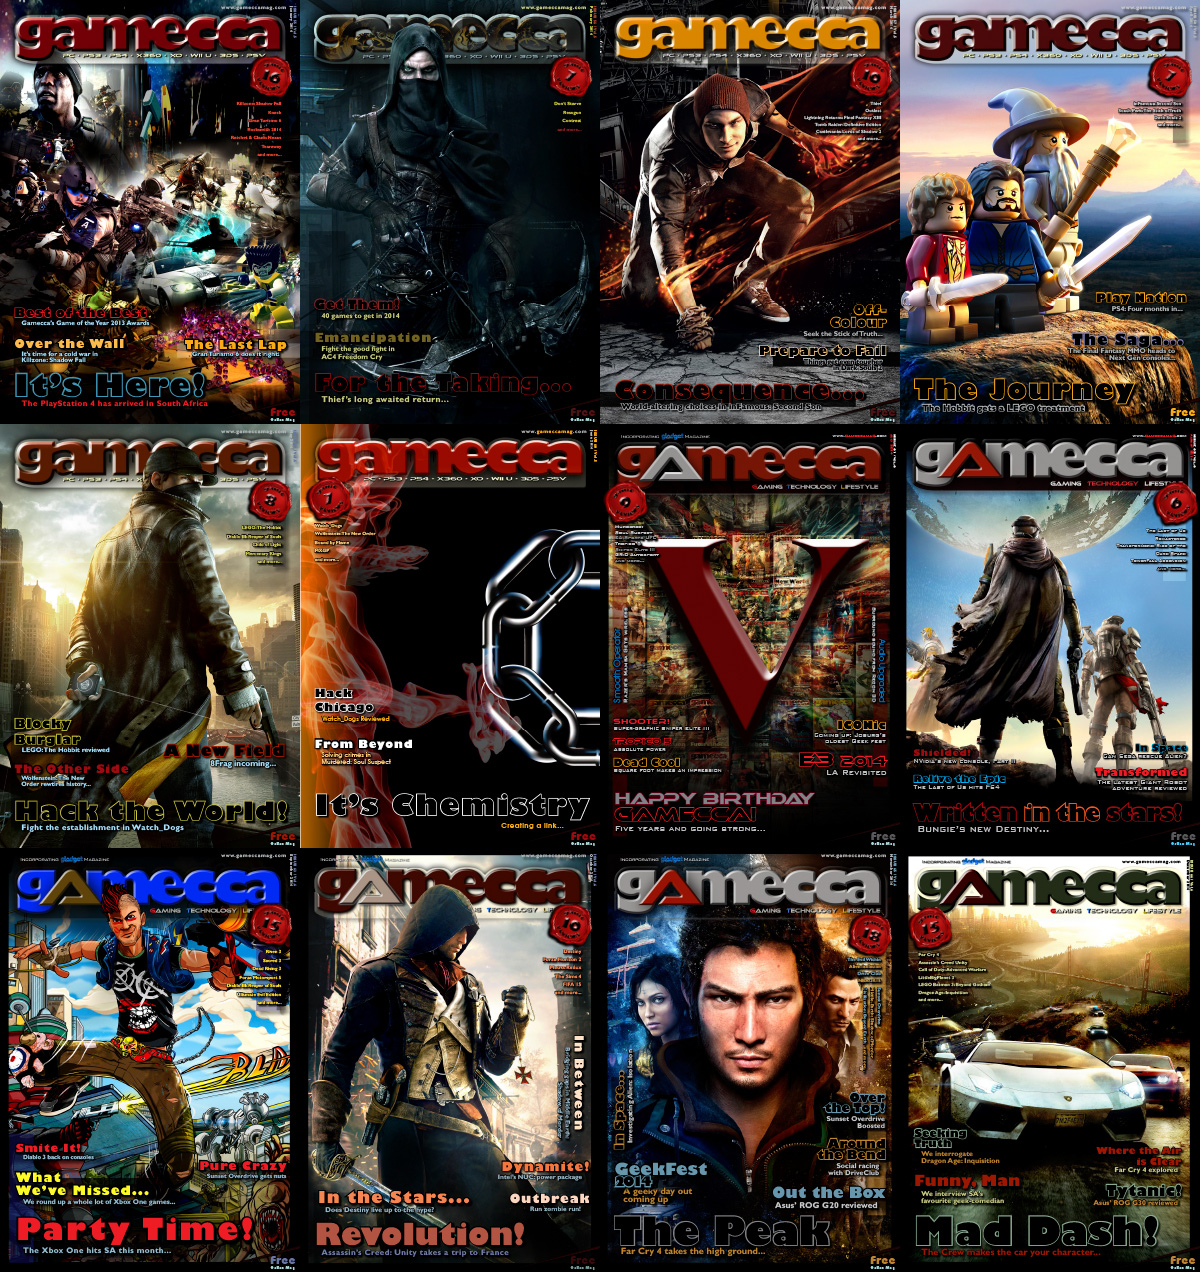 Gamecca Magazine 2014 Full Year Collection free download